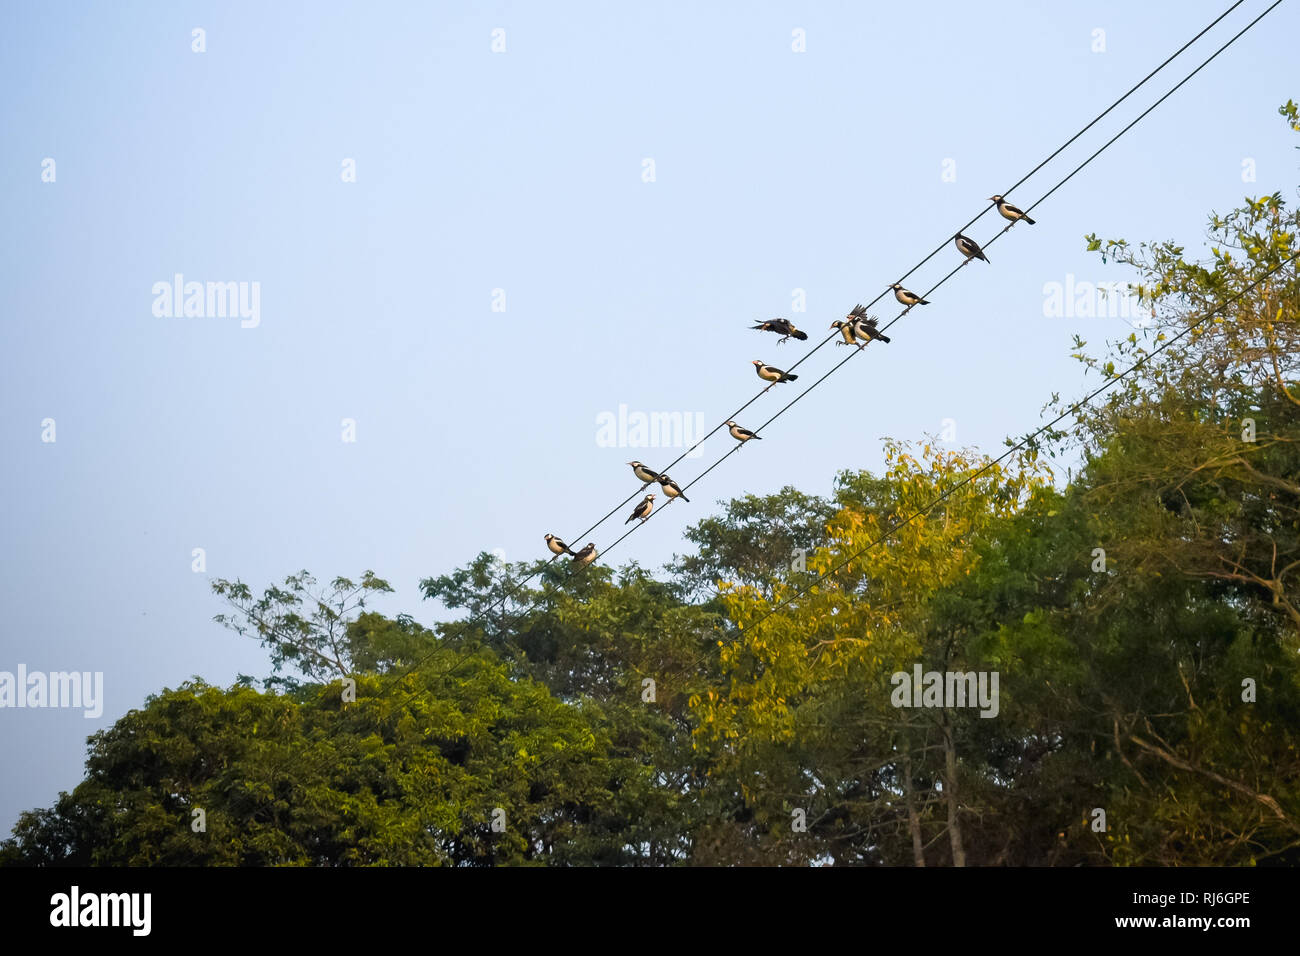 Many Sparrows or family of small passerine birds also known as true sparrows, Old World sparrow birds sitting on an electric cable in city background. - Stock Image